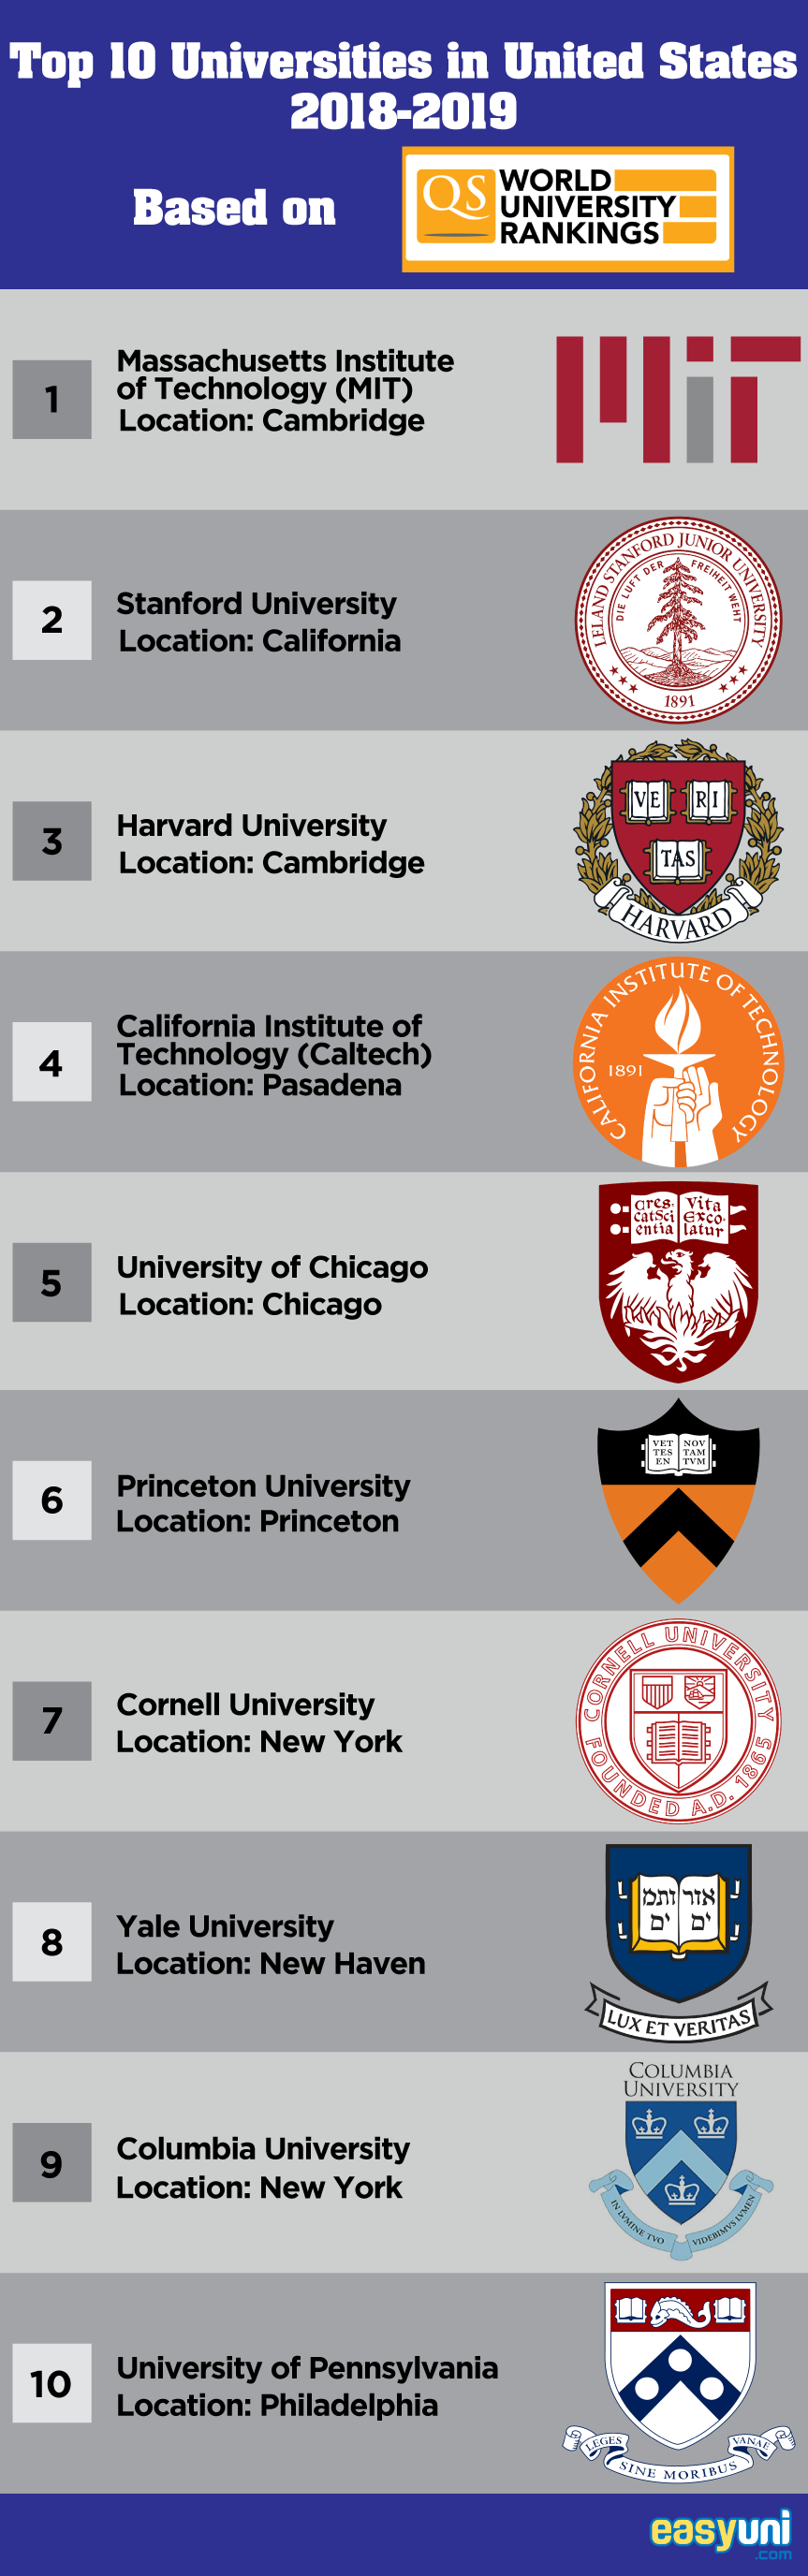 Top 10 Universities in United States 2019